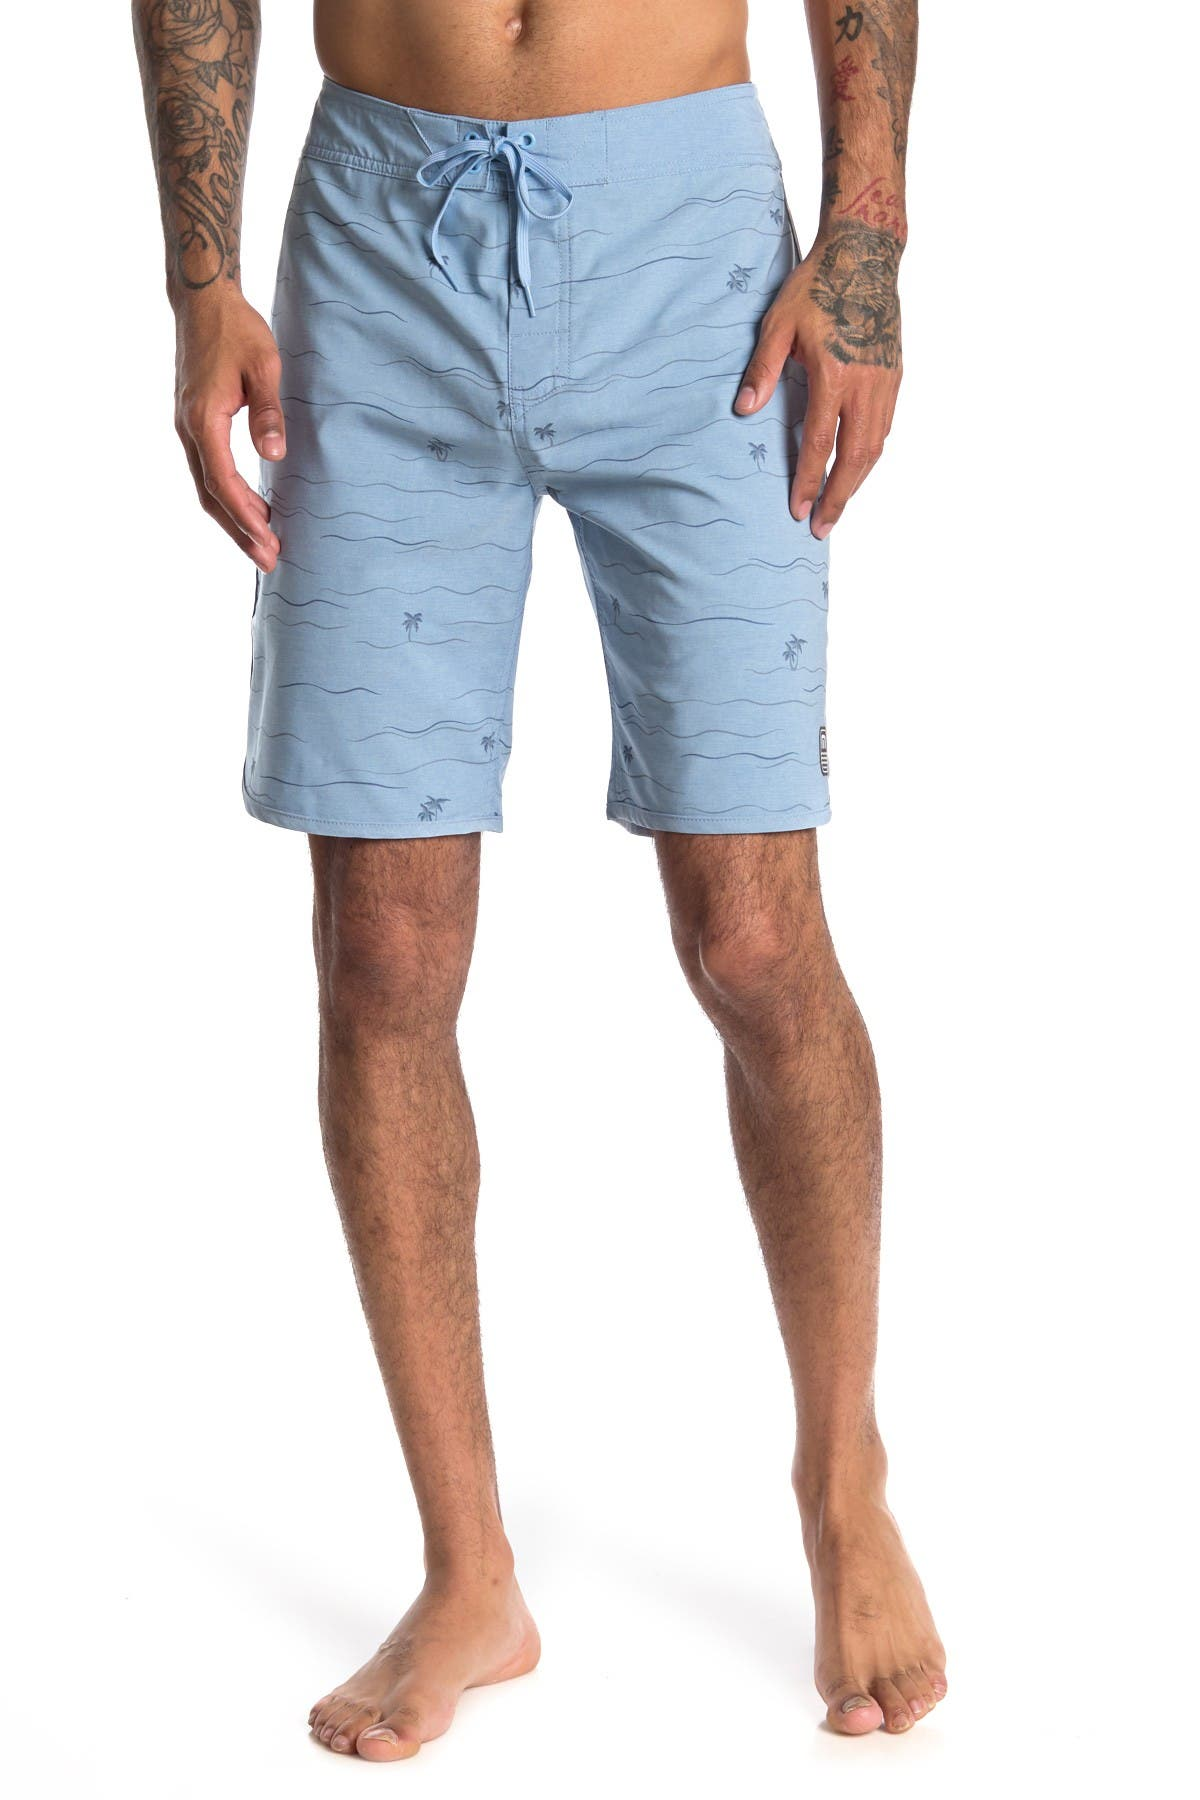 Image of TRAVIS MATHEW Cayos Board Shorts